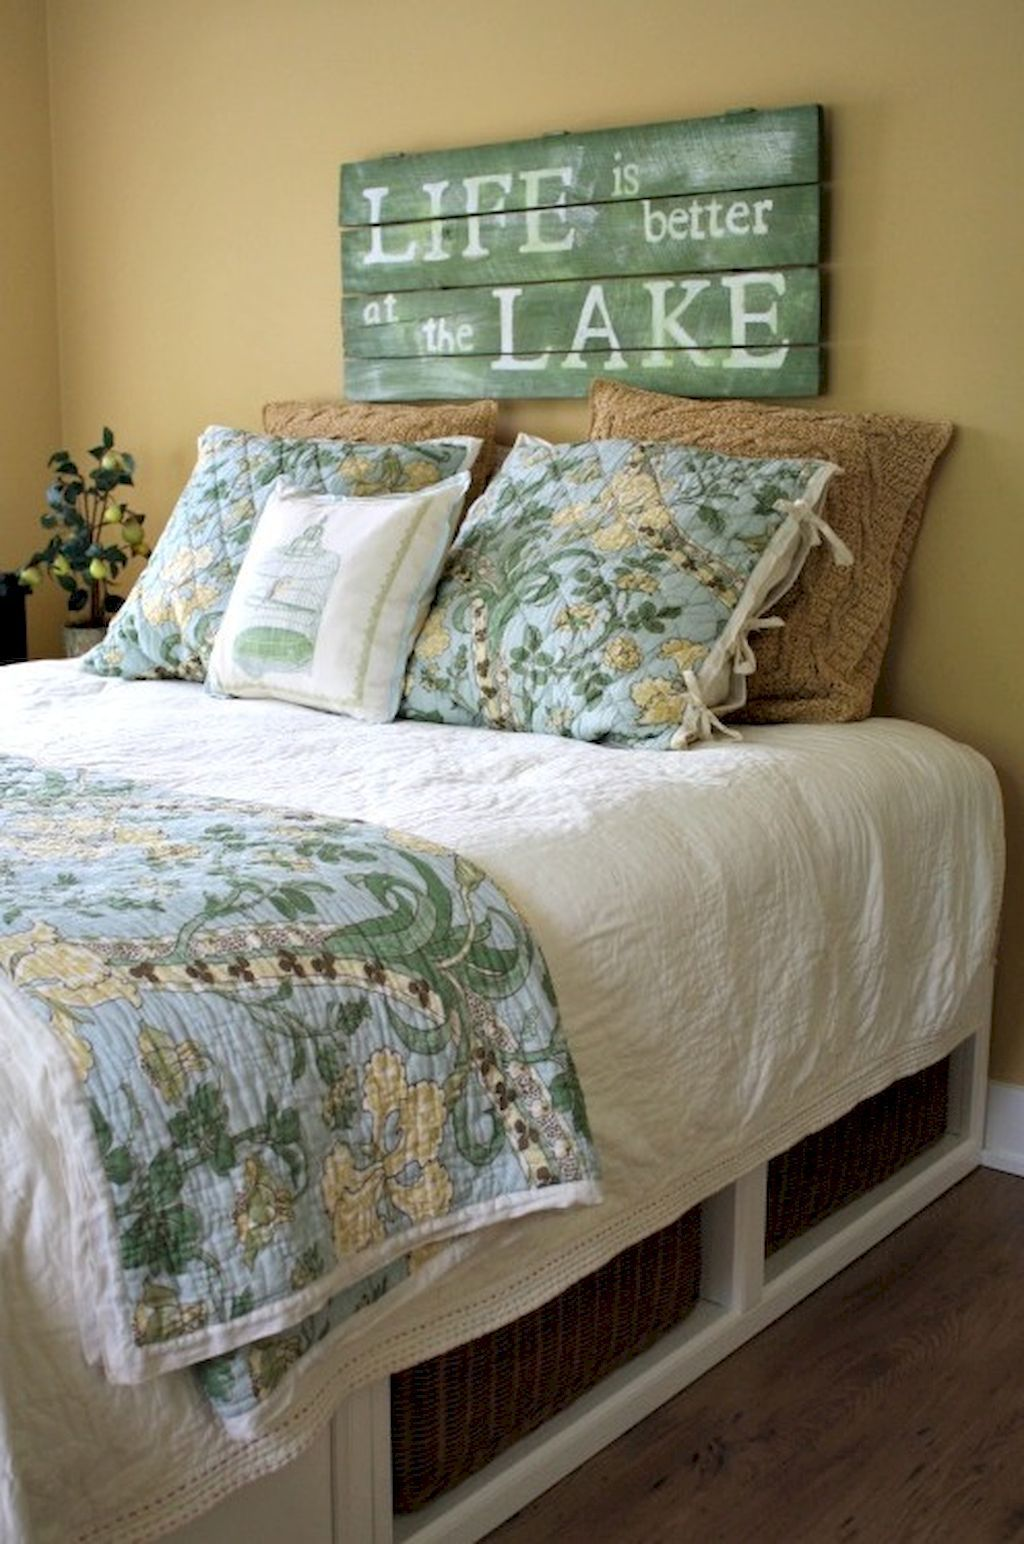 Awesome Lake House Decor Ideas 29 Guest Room Decor Lakehouse